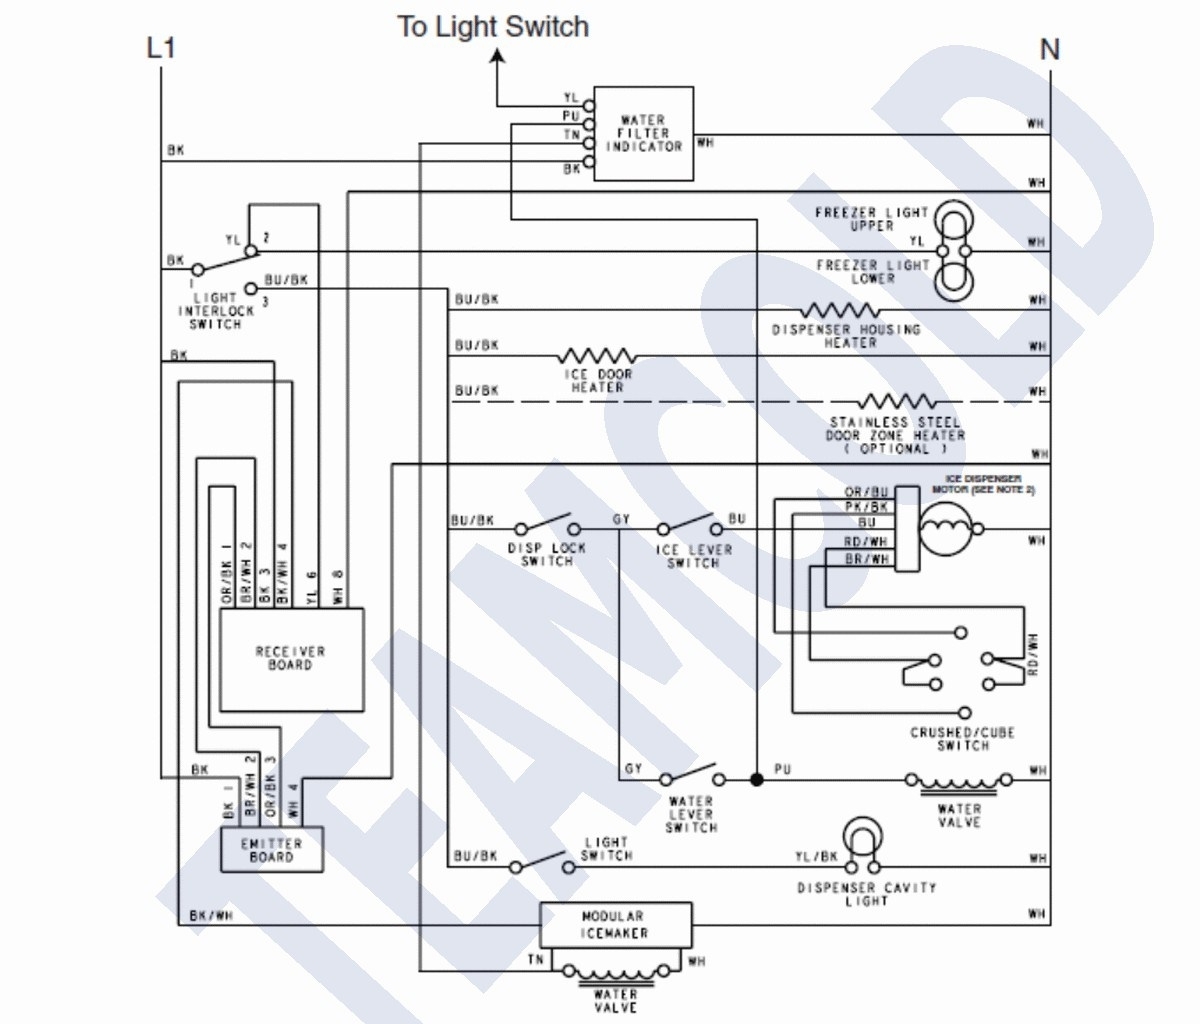 Ice Maker Wiring Schematic - Wiring Diagram pale-activity -  pale-activity.fiocouture.it | Ge Ice Maker Dispenser Wiring Schematic |  | pale-activity.fiocouture.it